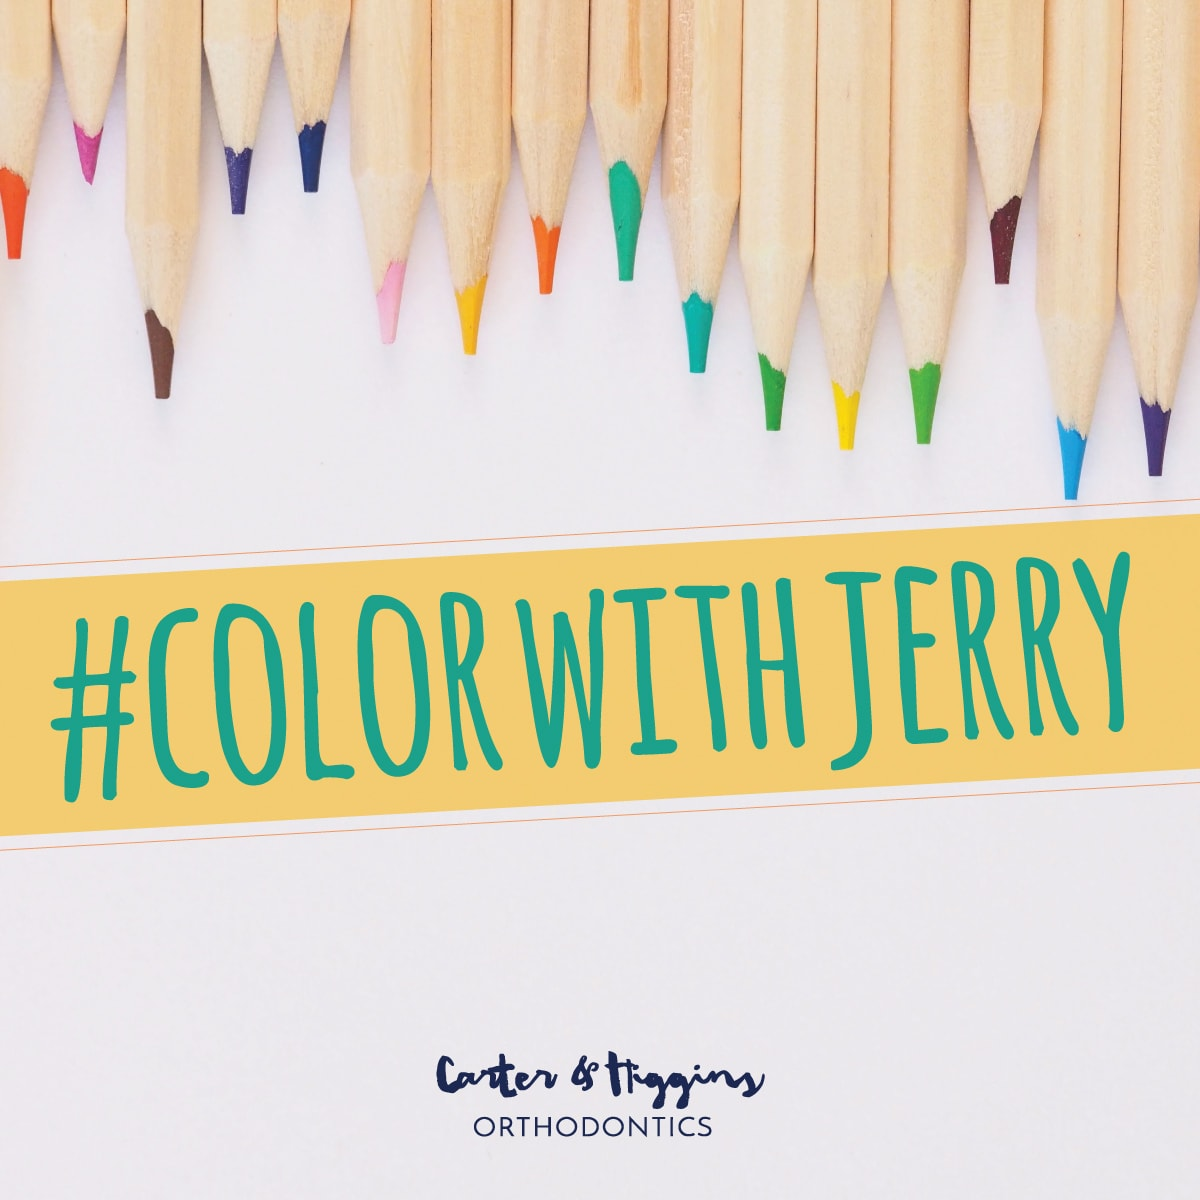 colorwithjerry - Color With Jerry!